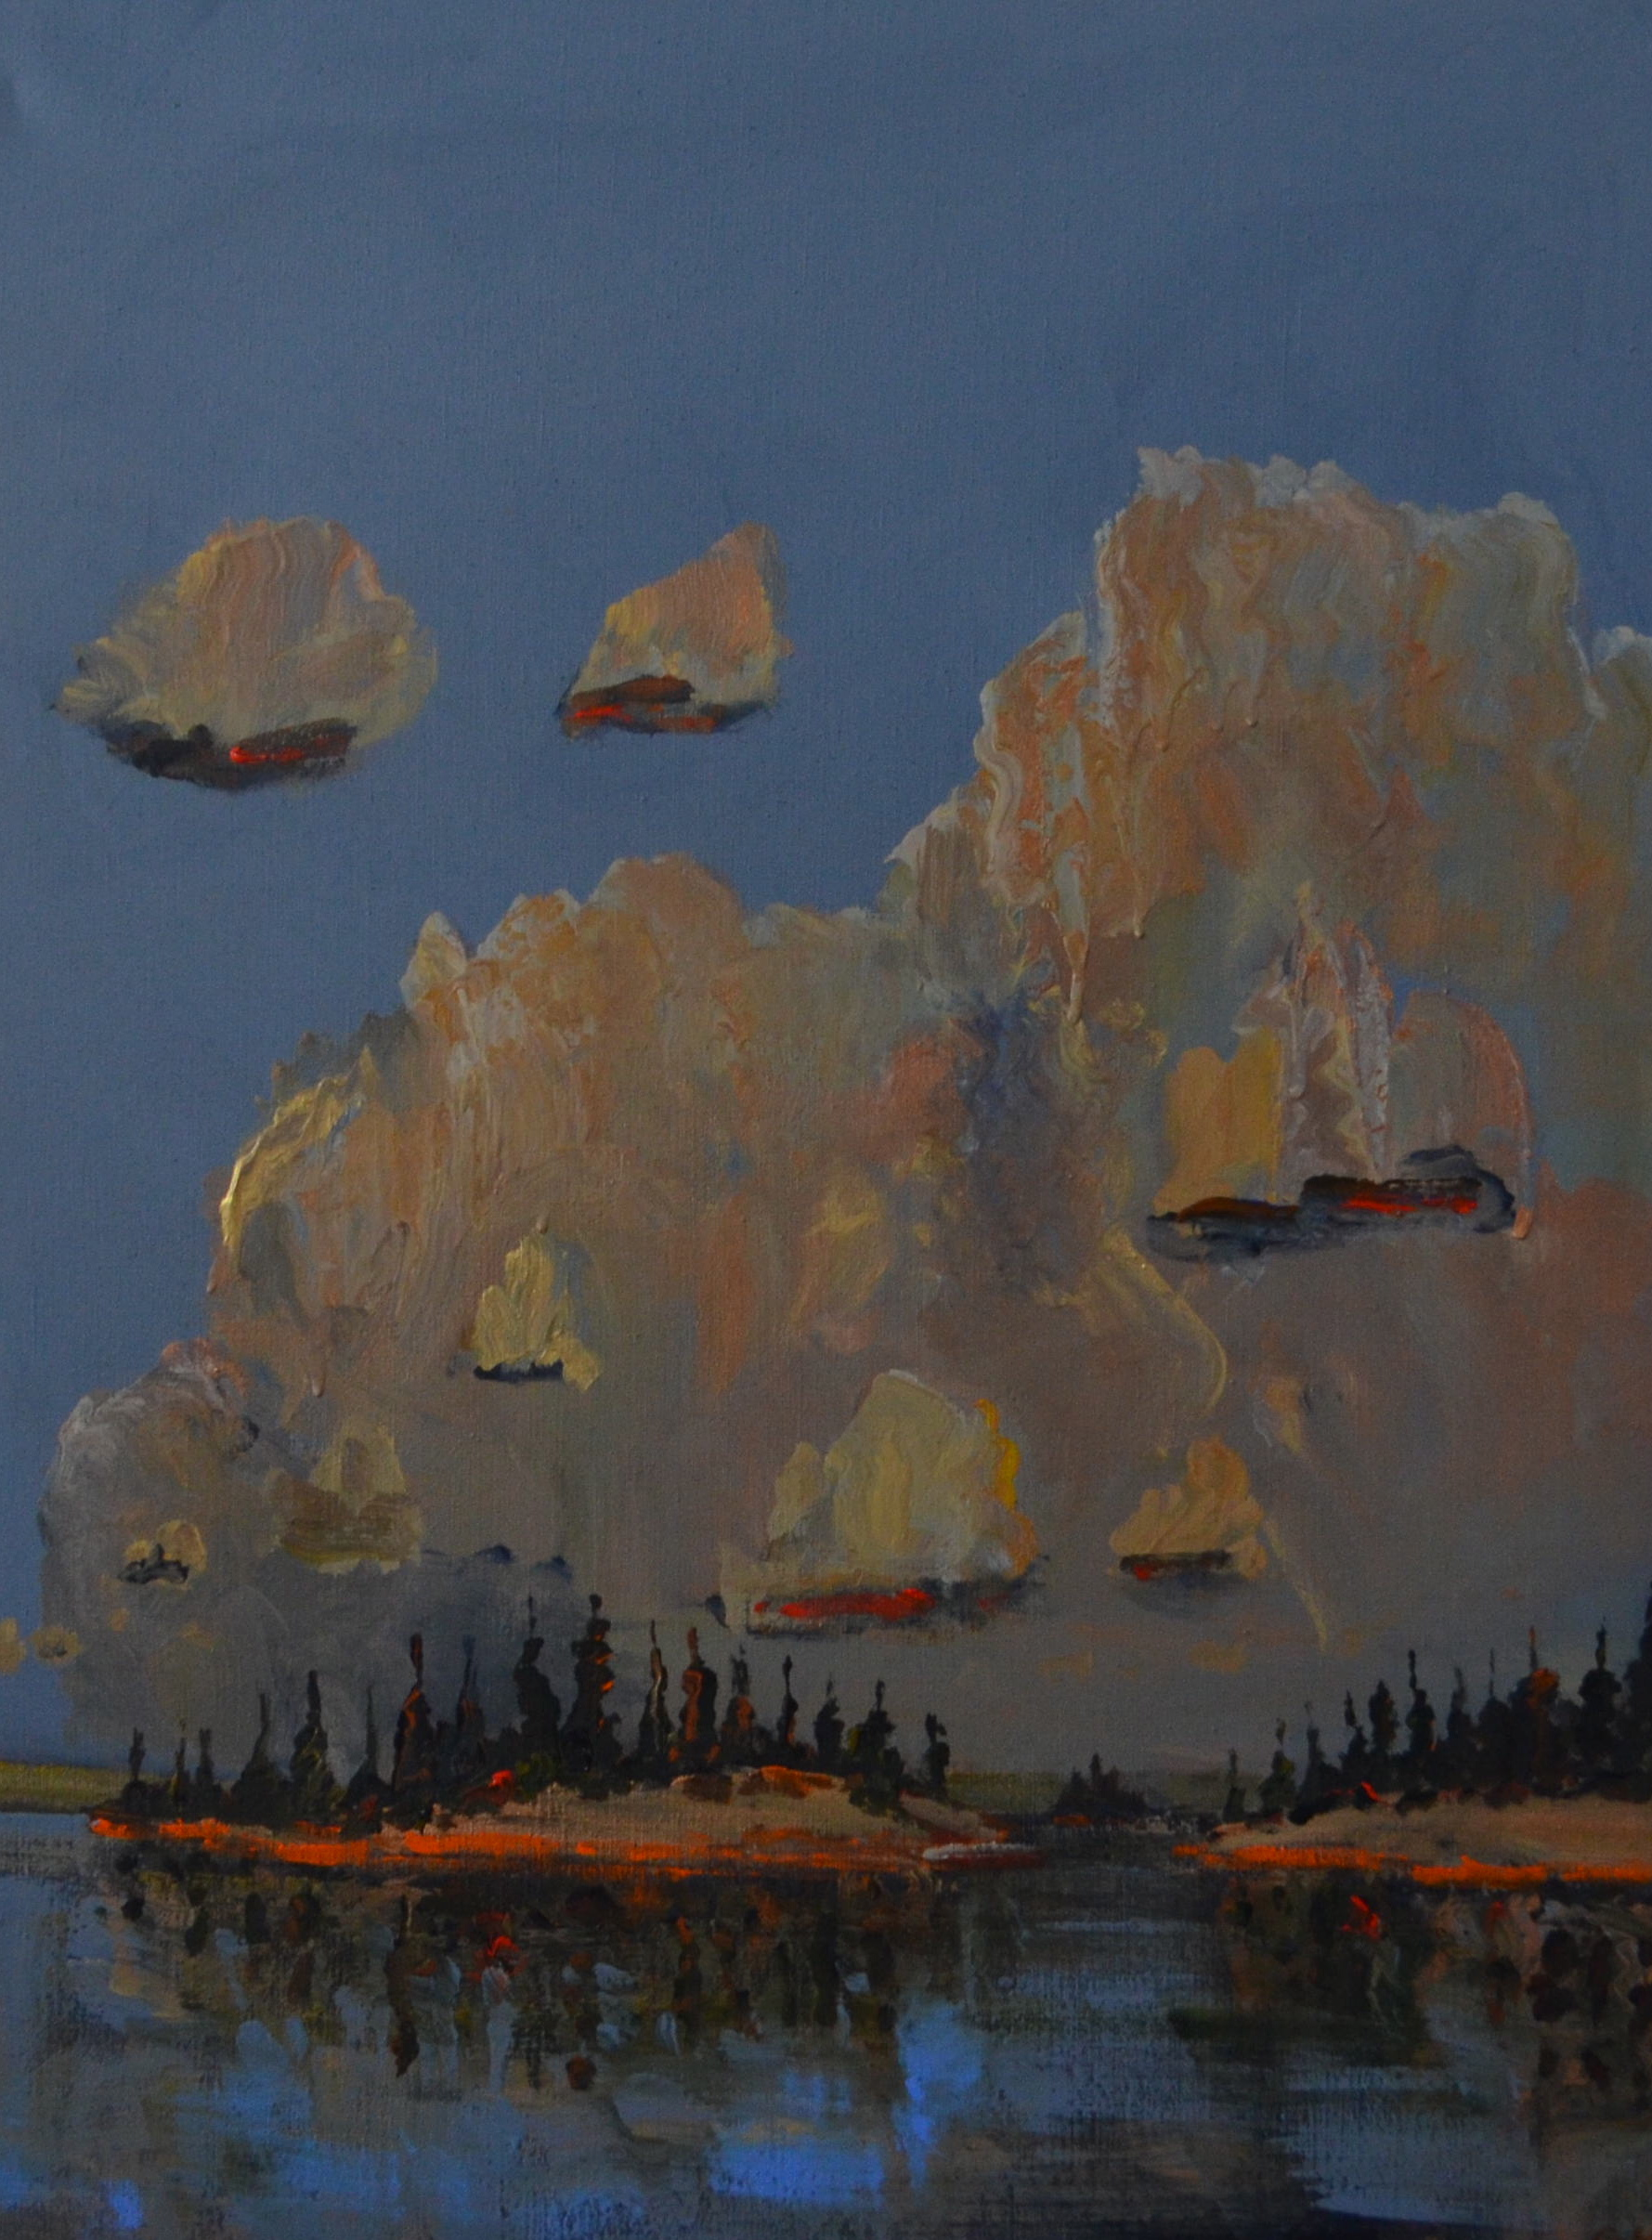 Smokey-Clouds-Between-Islands-2014-acrylic-on-canvas-48in-x-36in